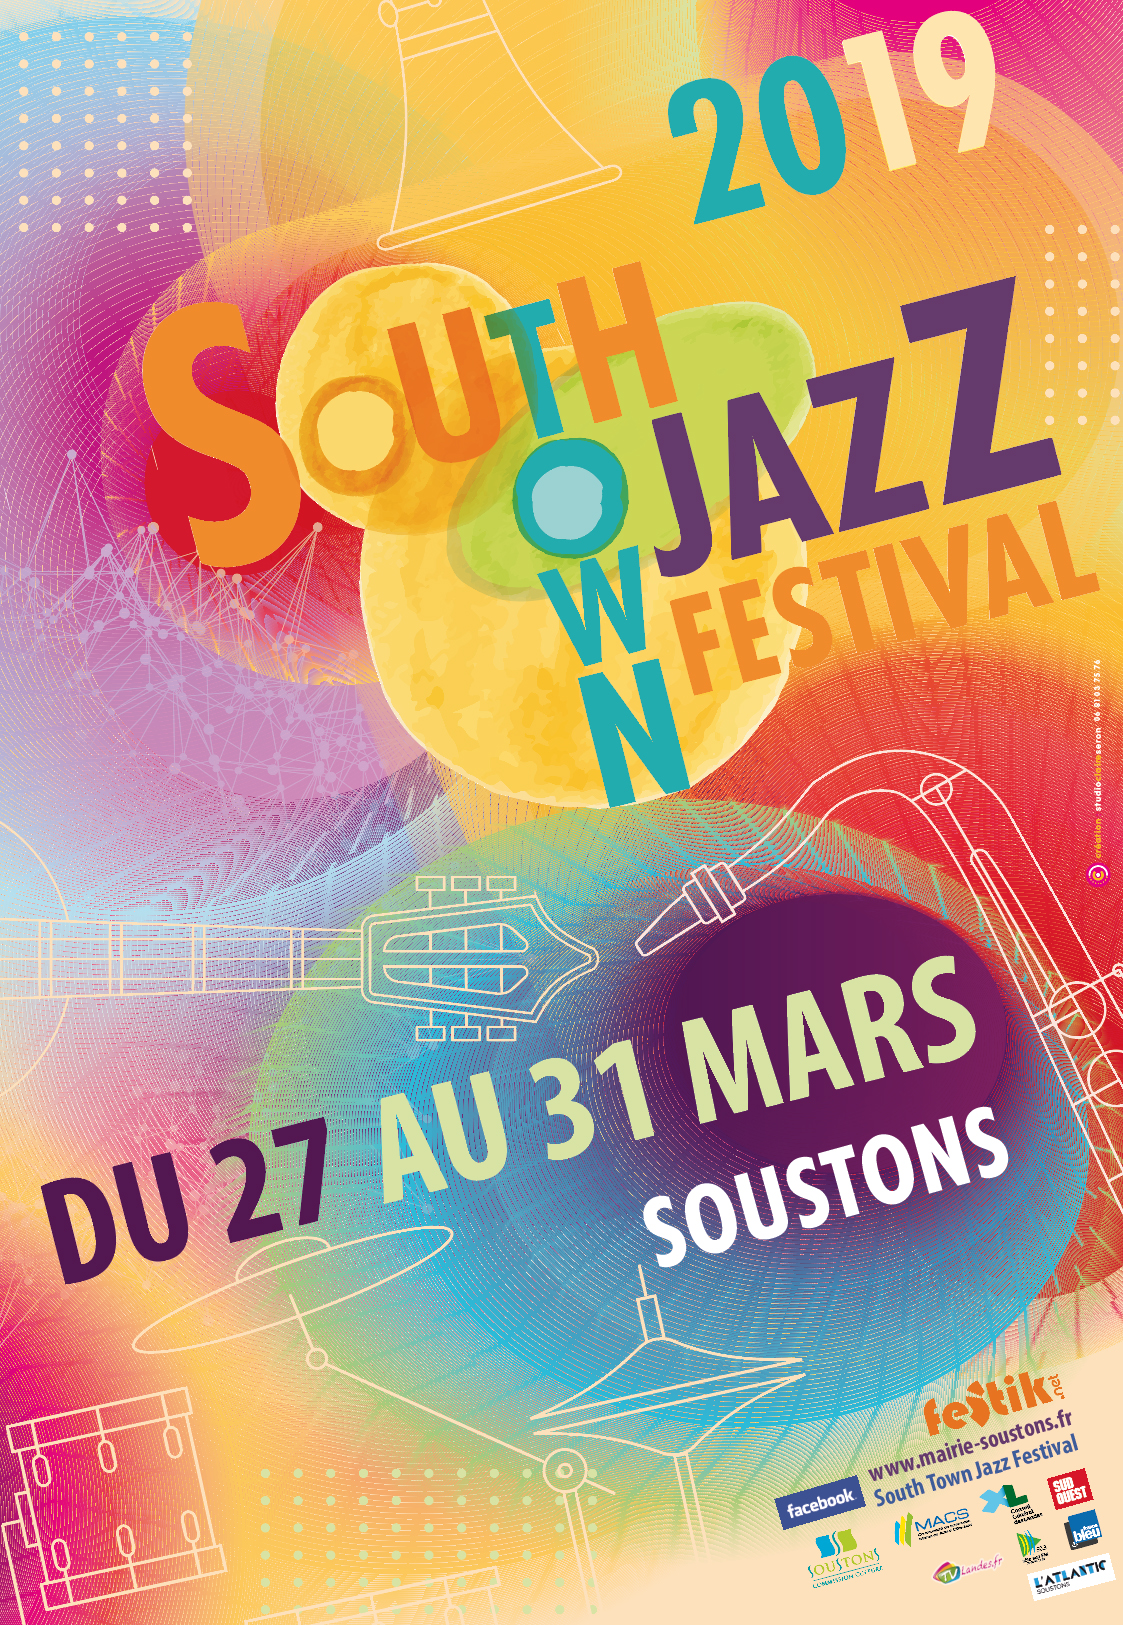 affiche south town jazz festival 2019 OK